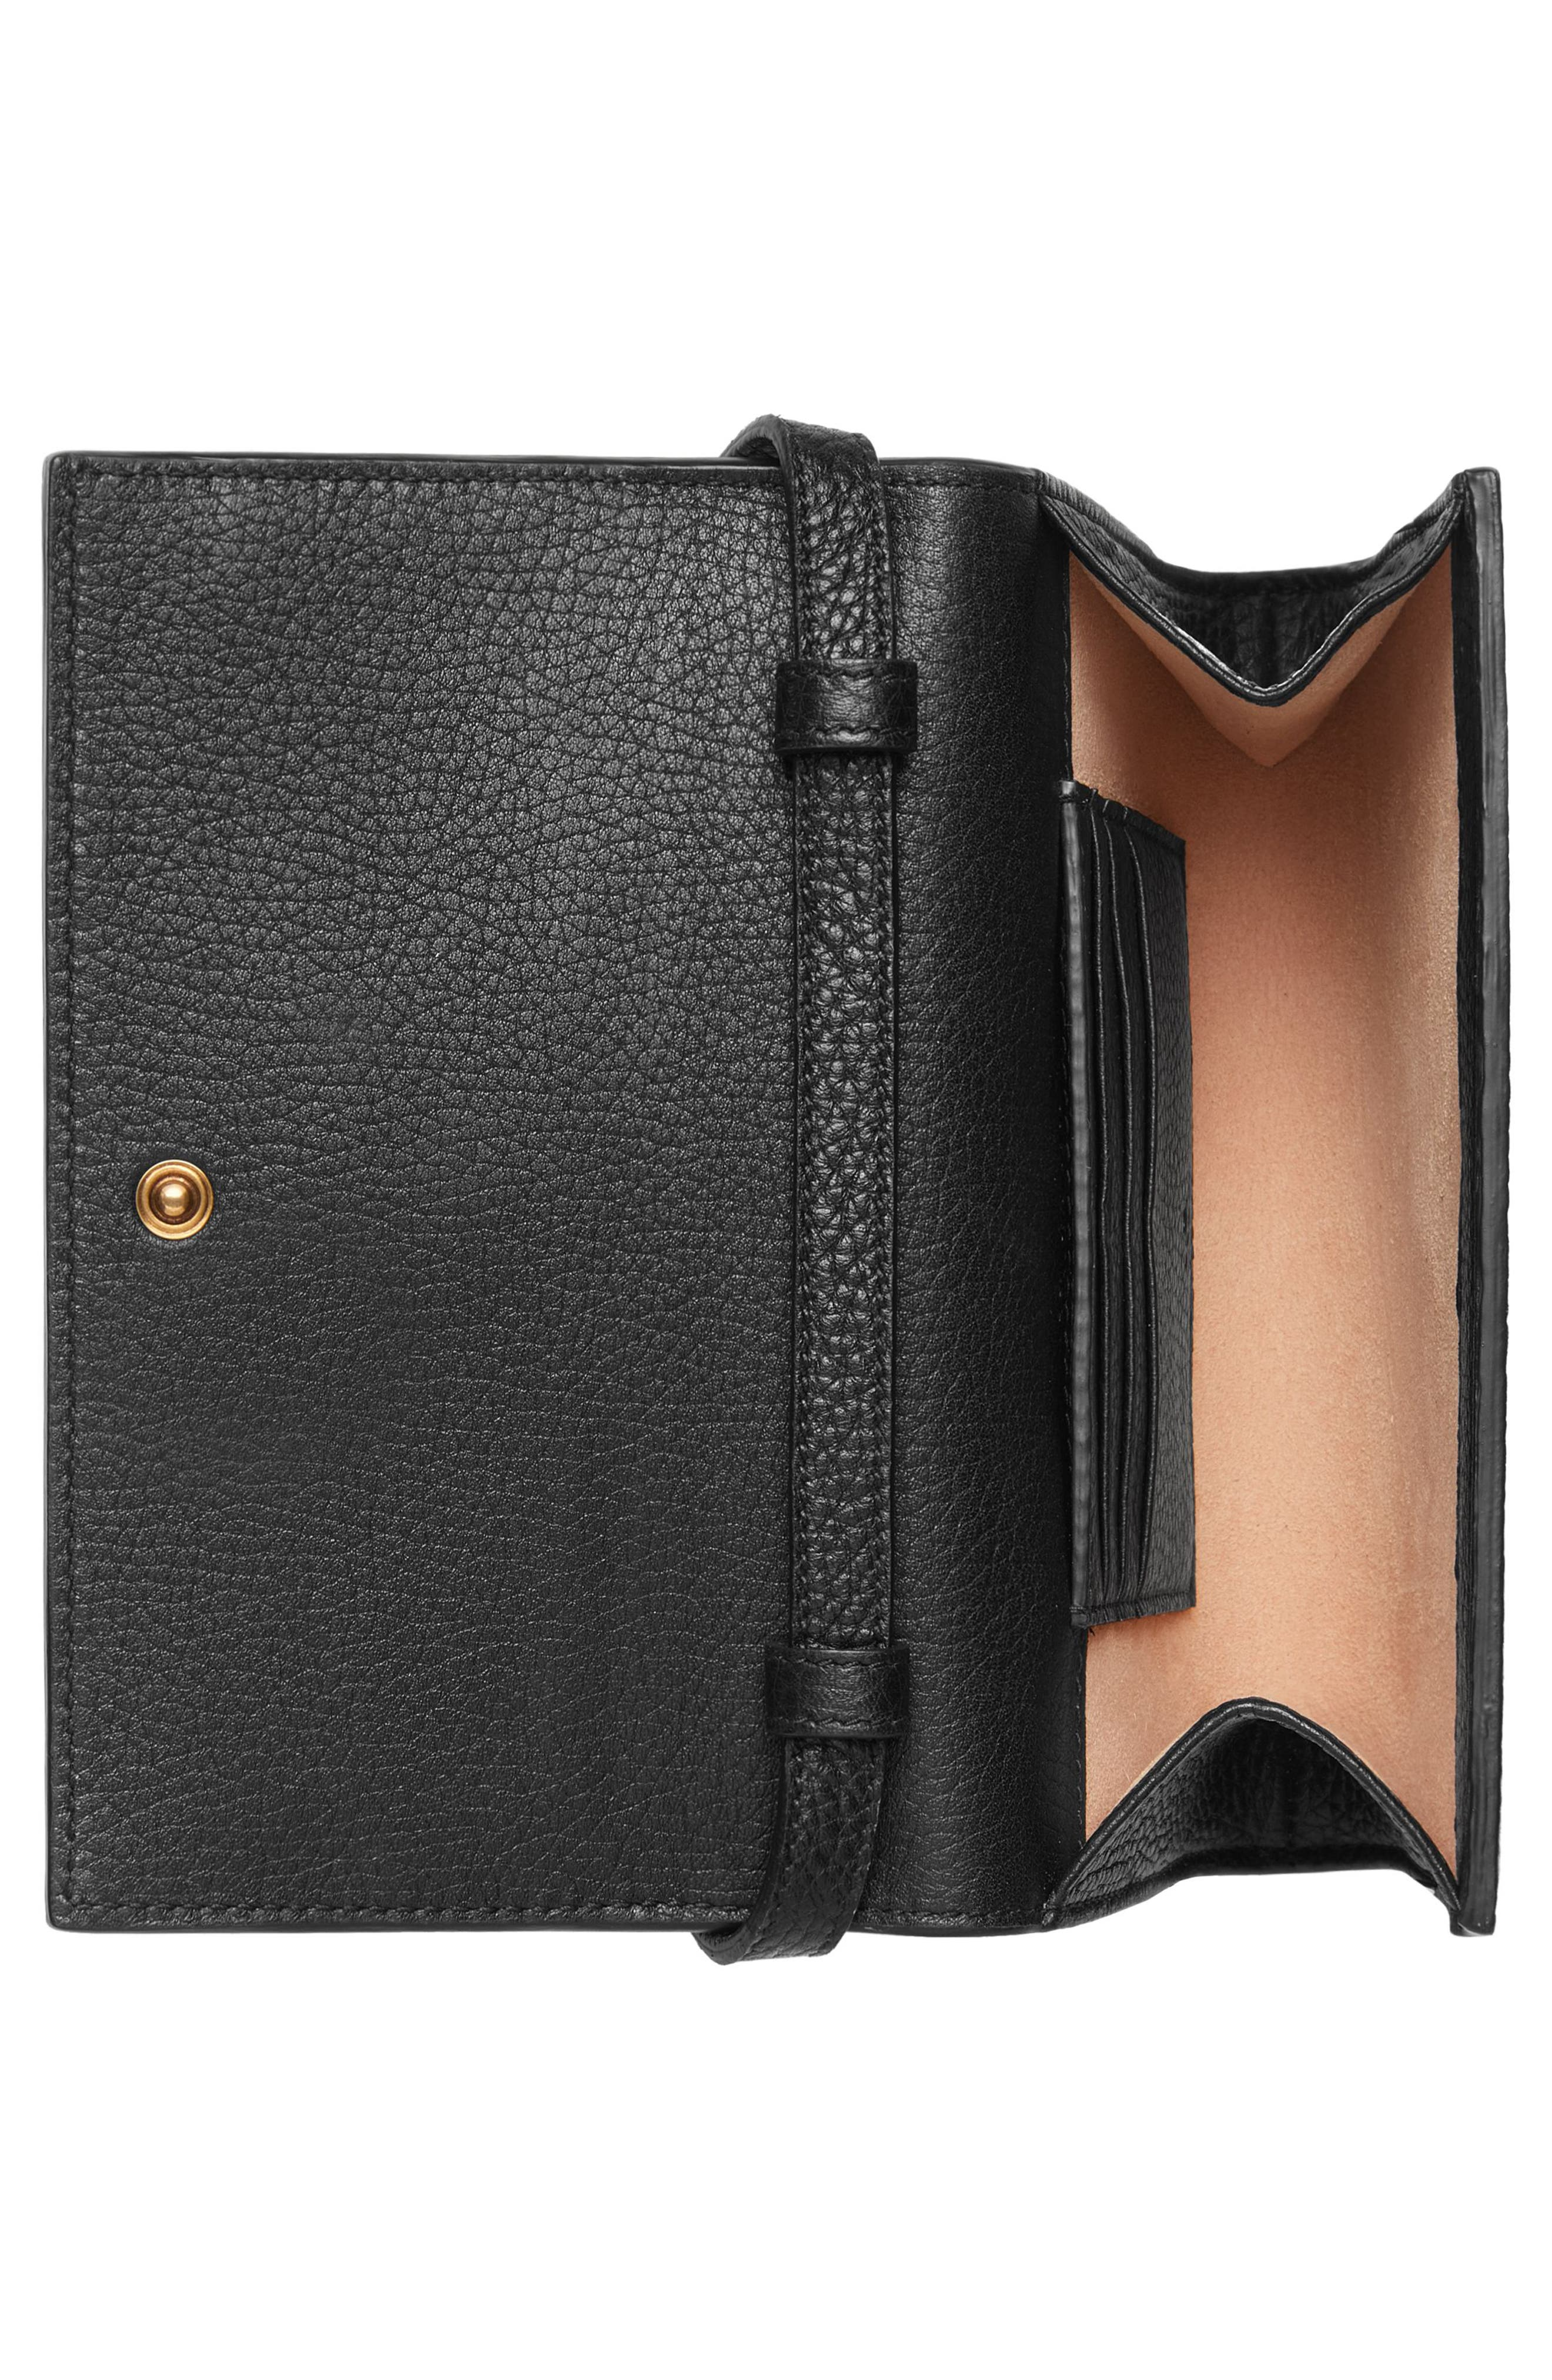 Animalier Bee Leather Wallet,                             Alternate thumbnail 2, color,                             Nero